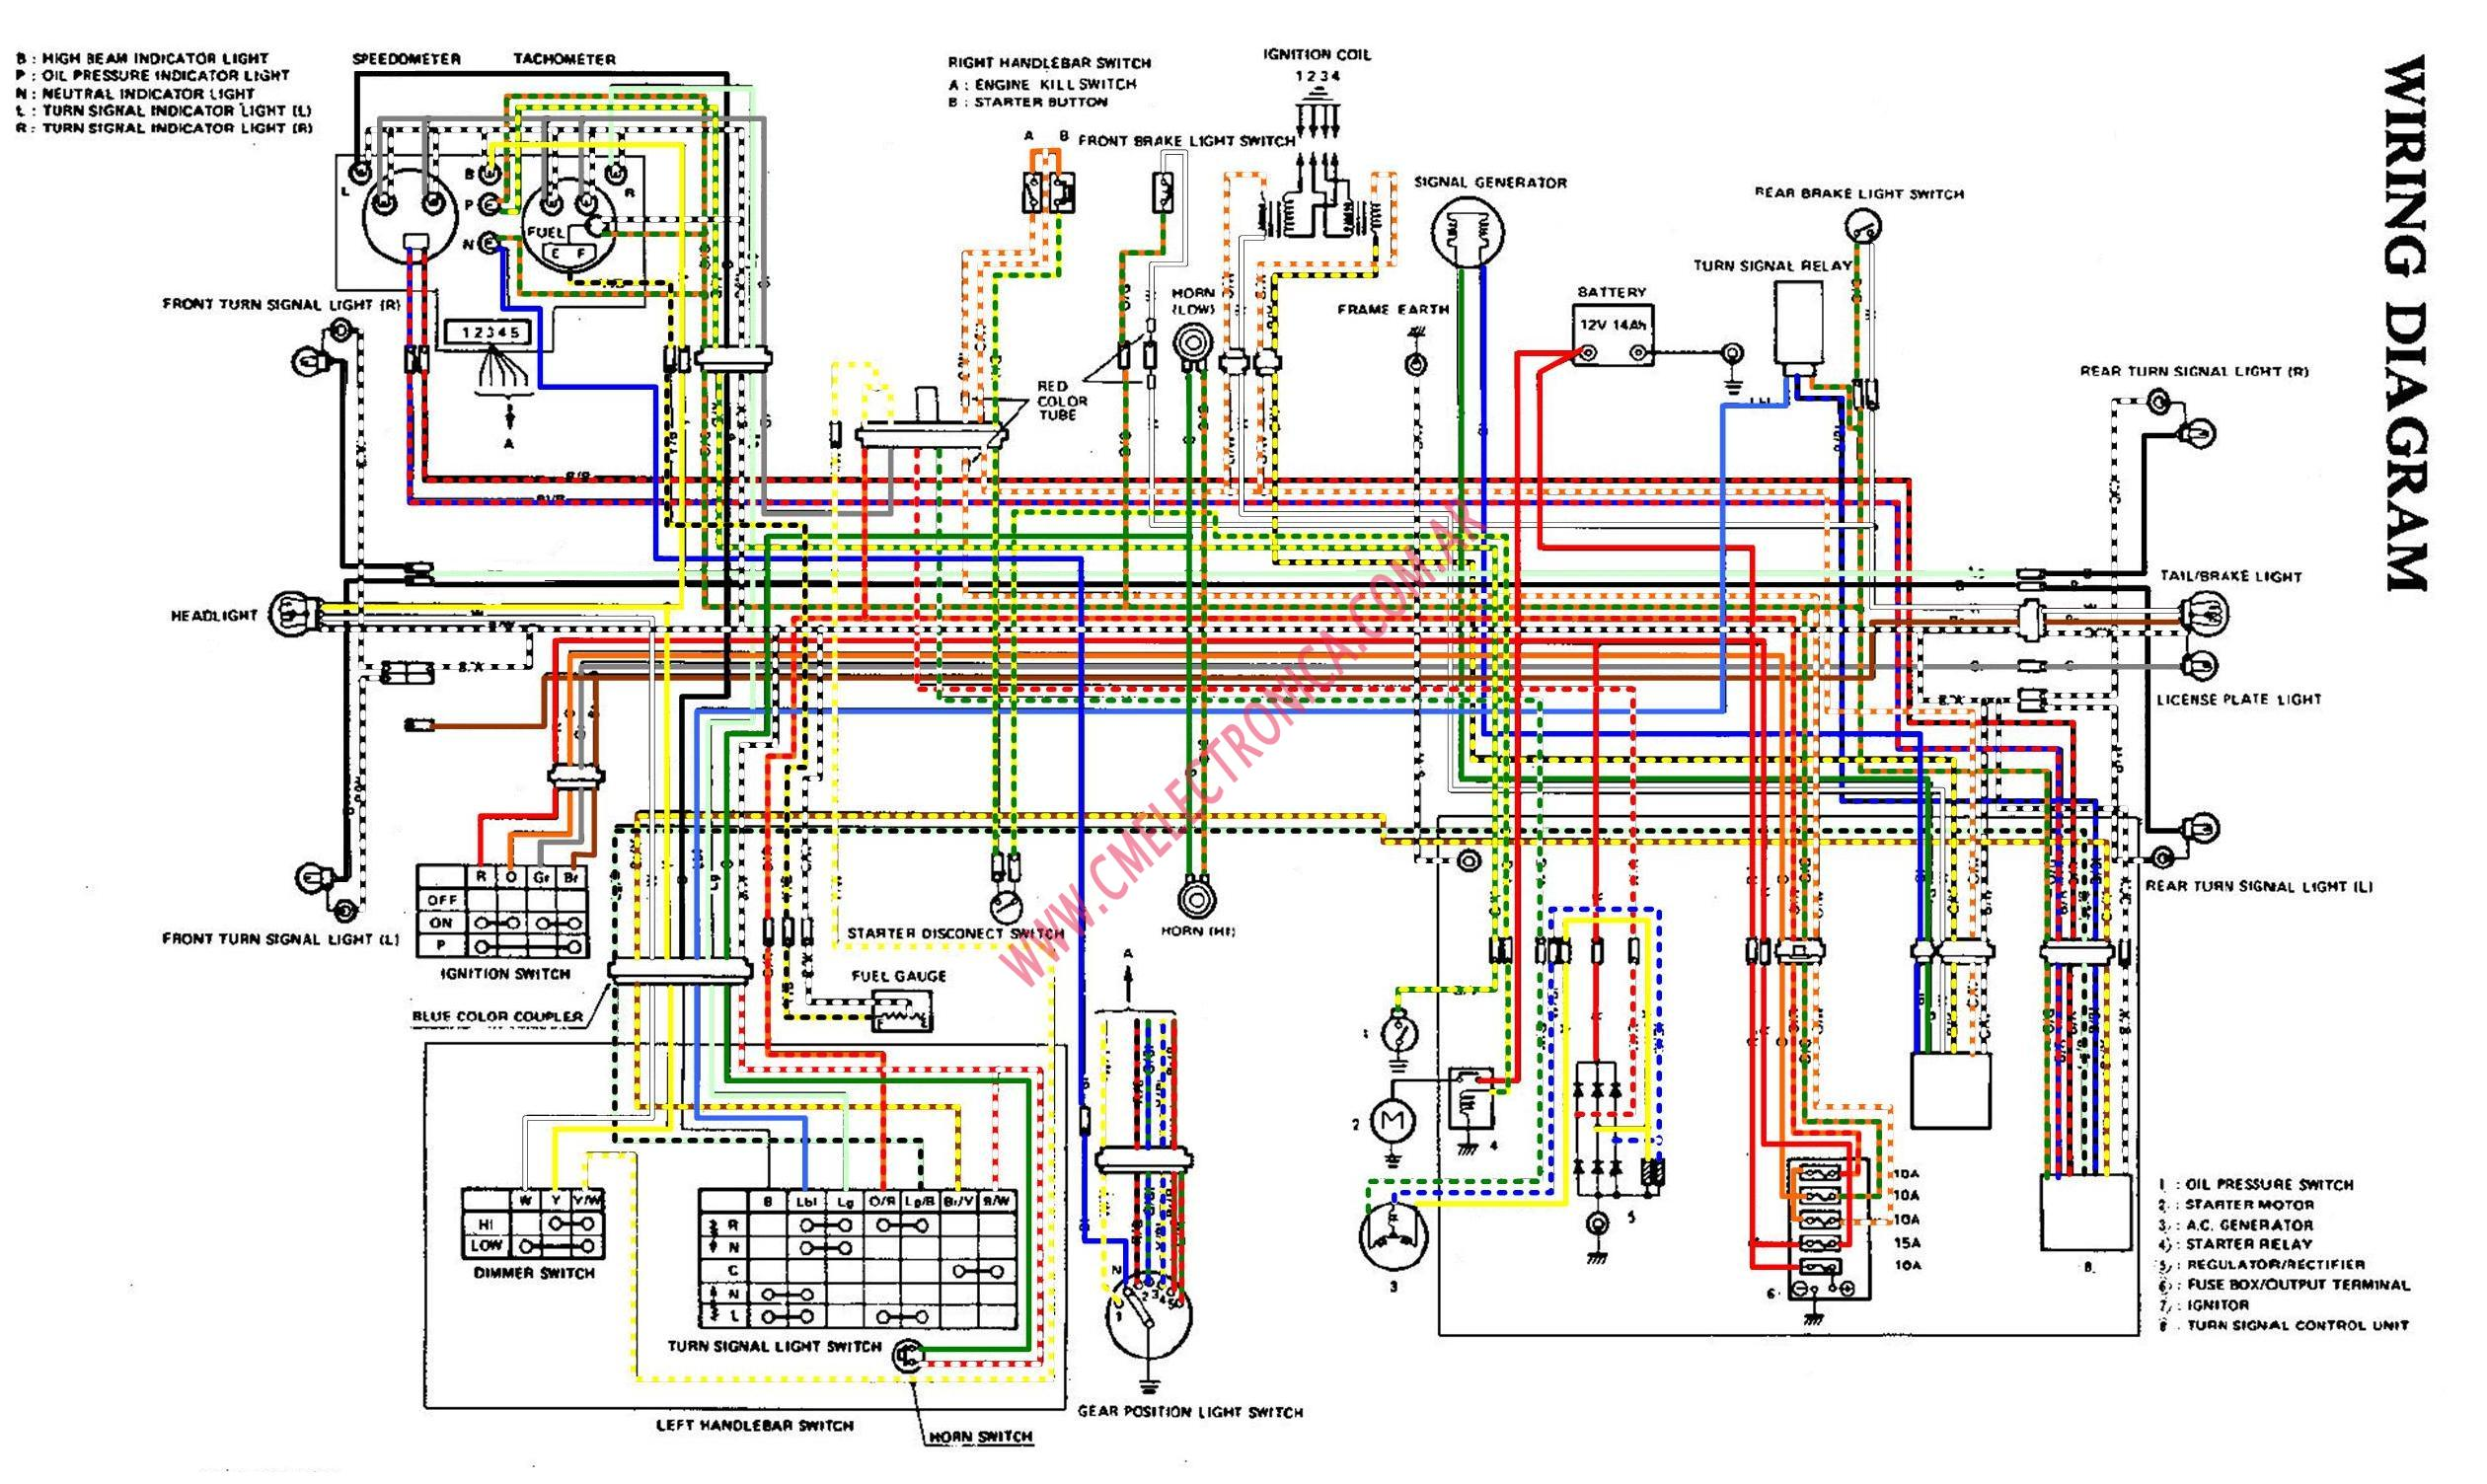 Gs750 Wiring Diagram | Wiring Diagram on